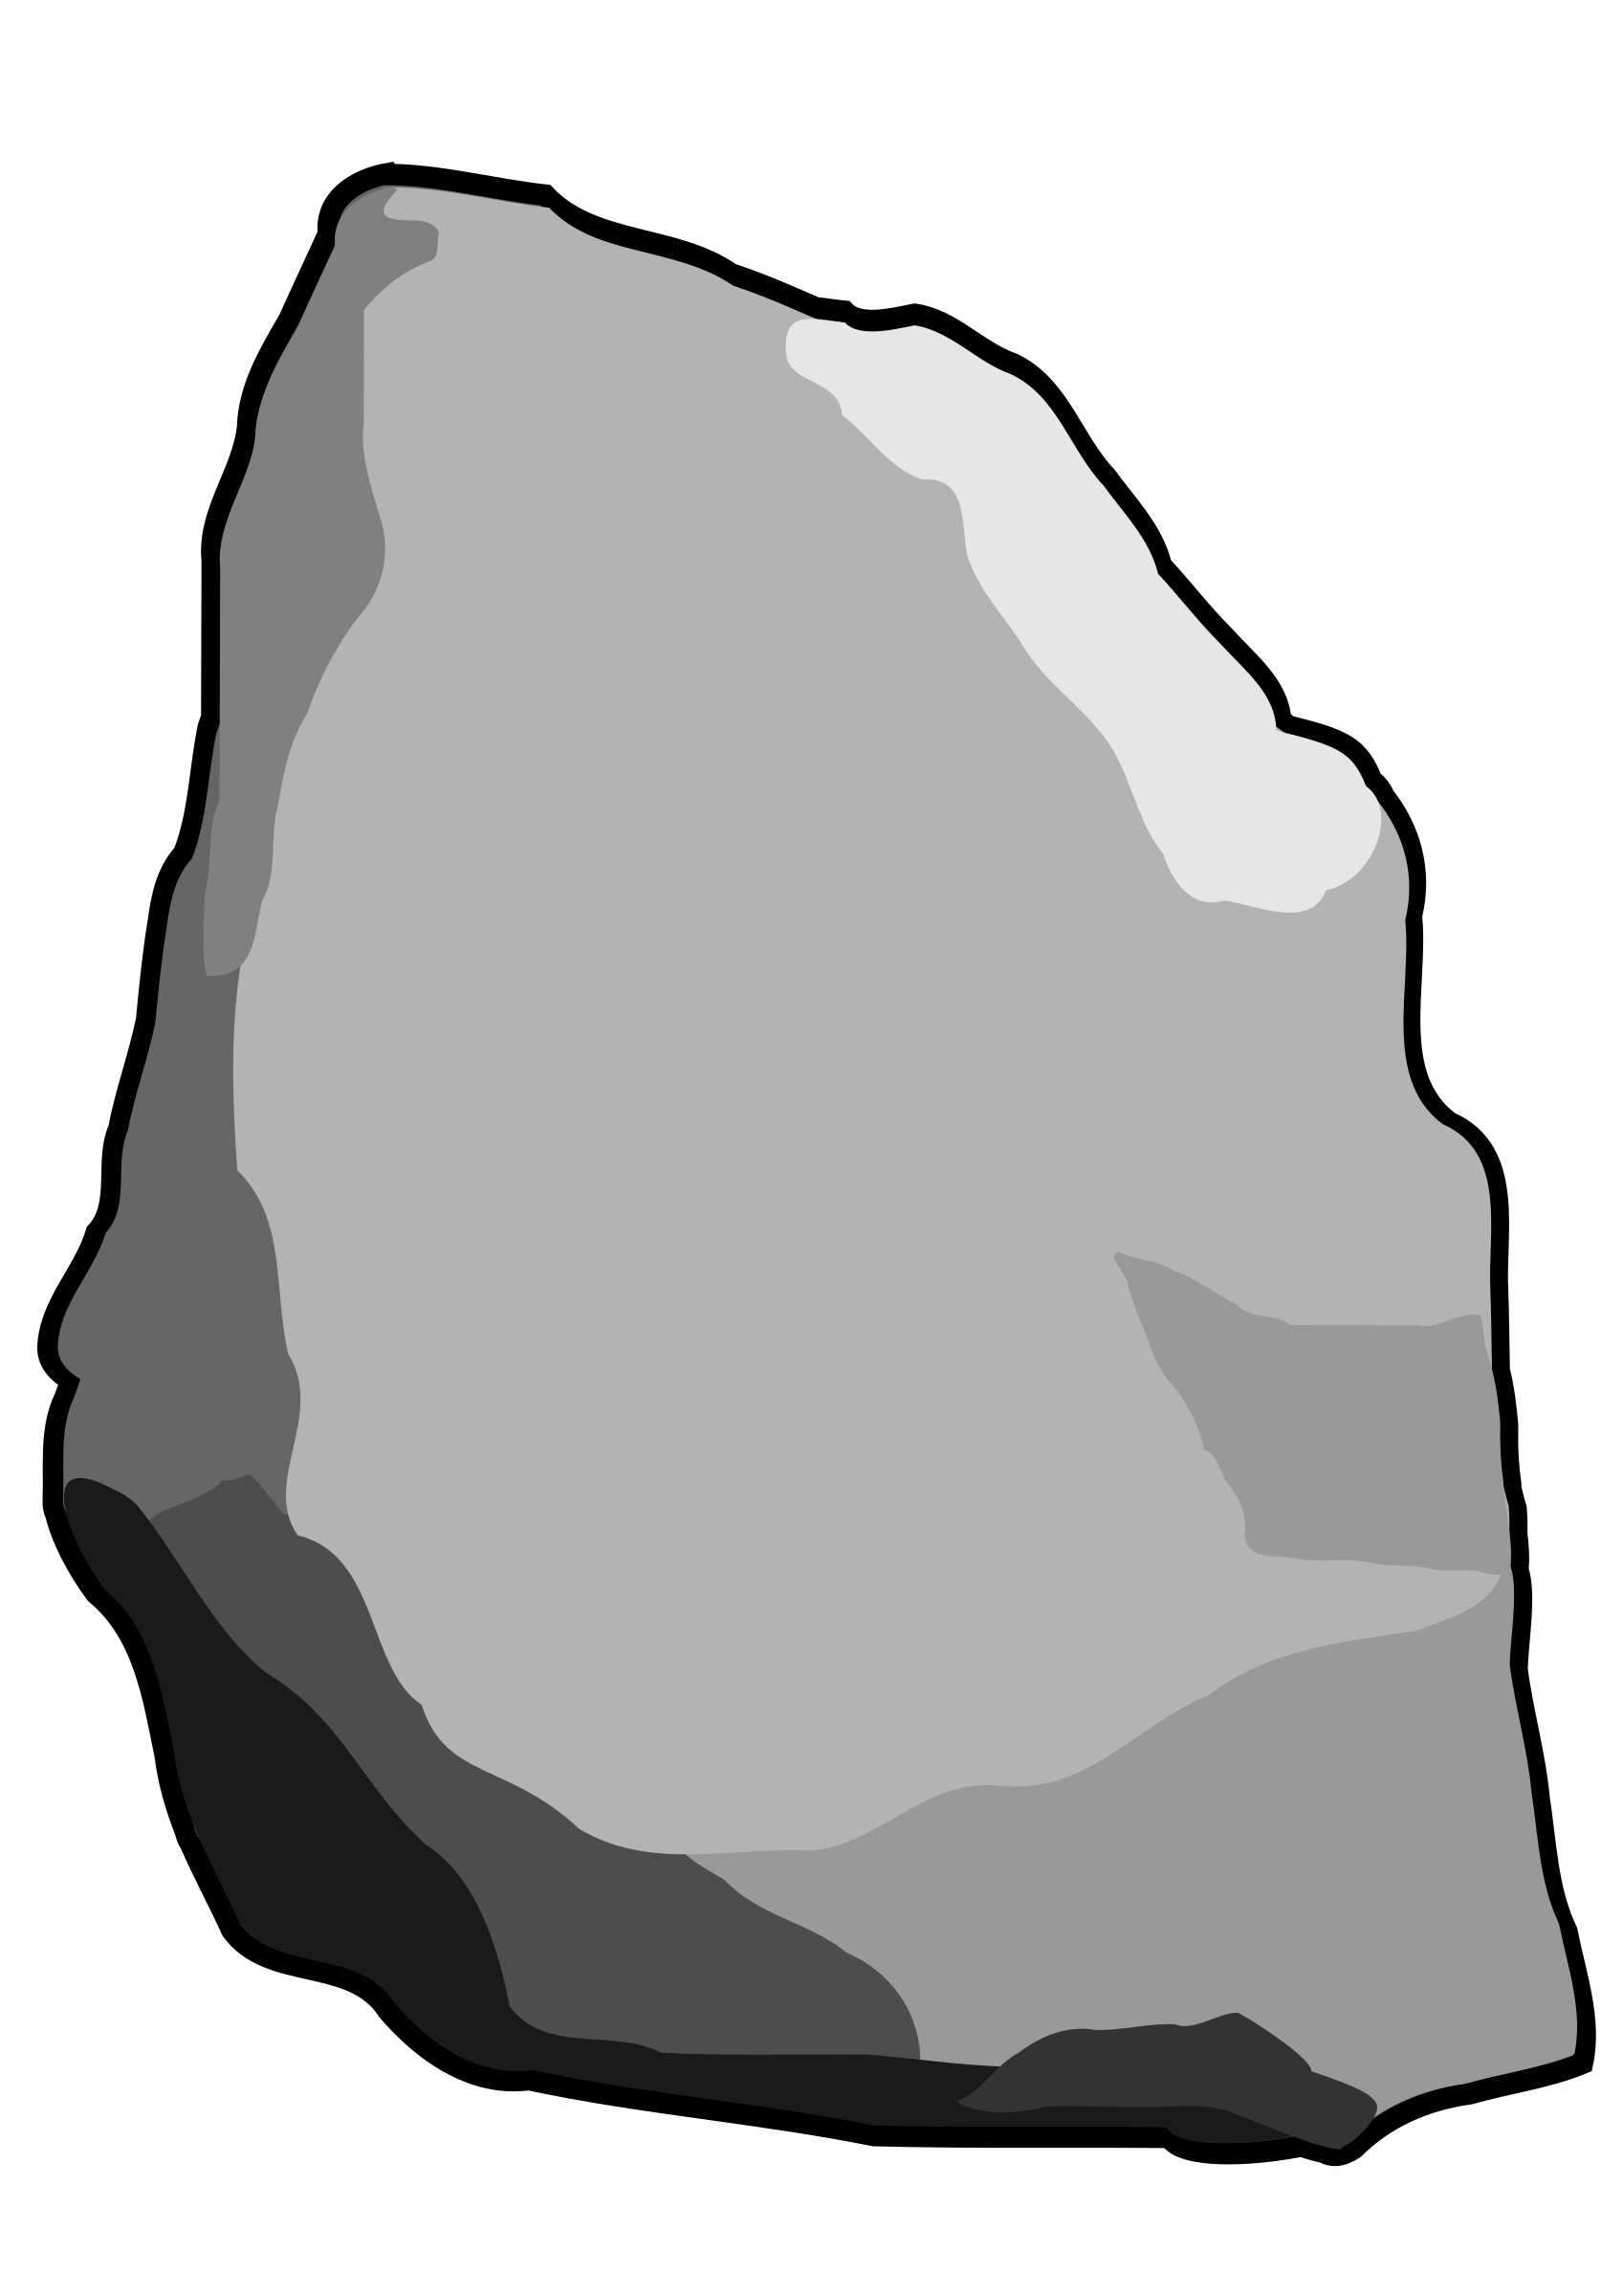 Rock illustration clipart clip art black and white download Grey Stone Rock Vector Clipart image - Free stock photo ... clip art black and white download